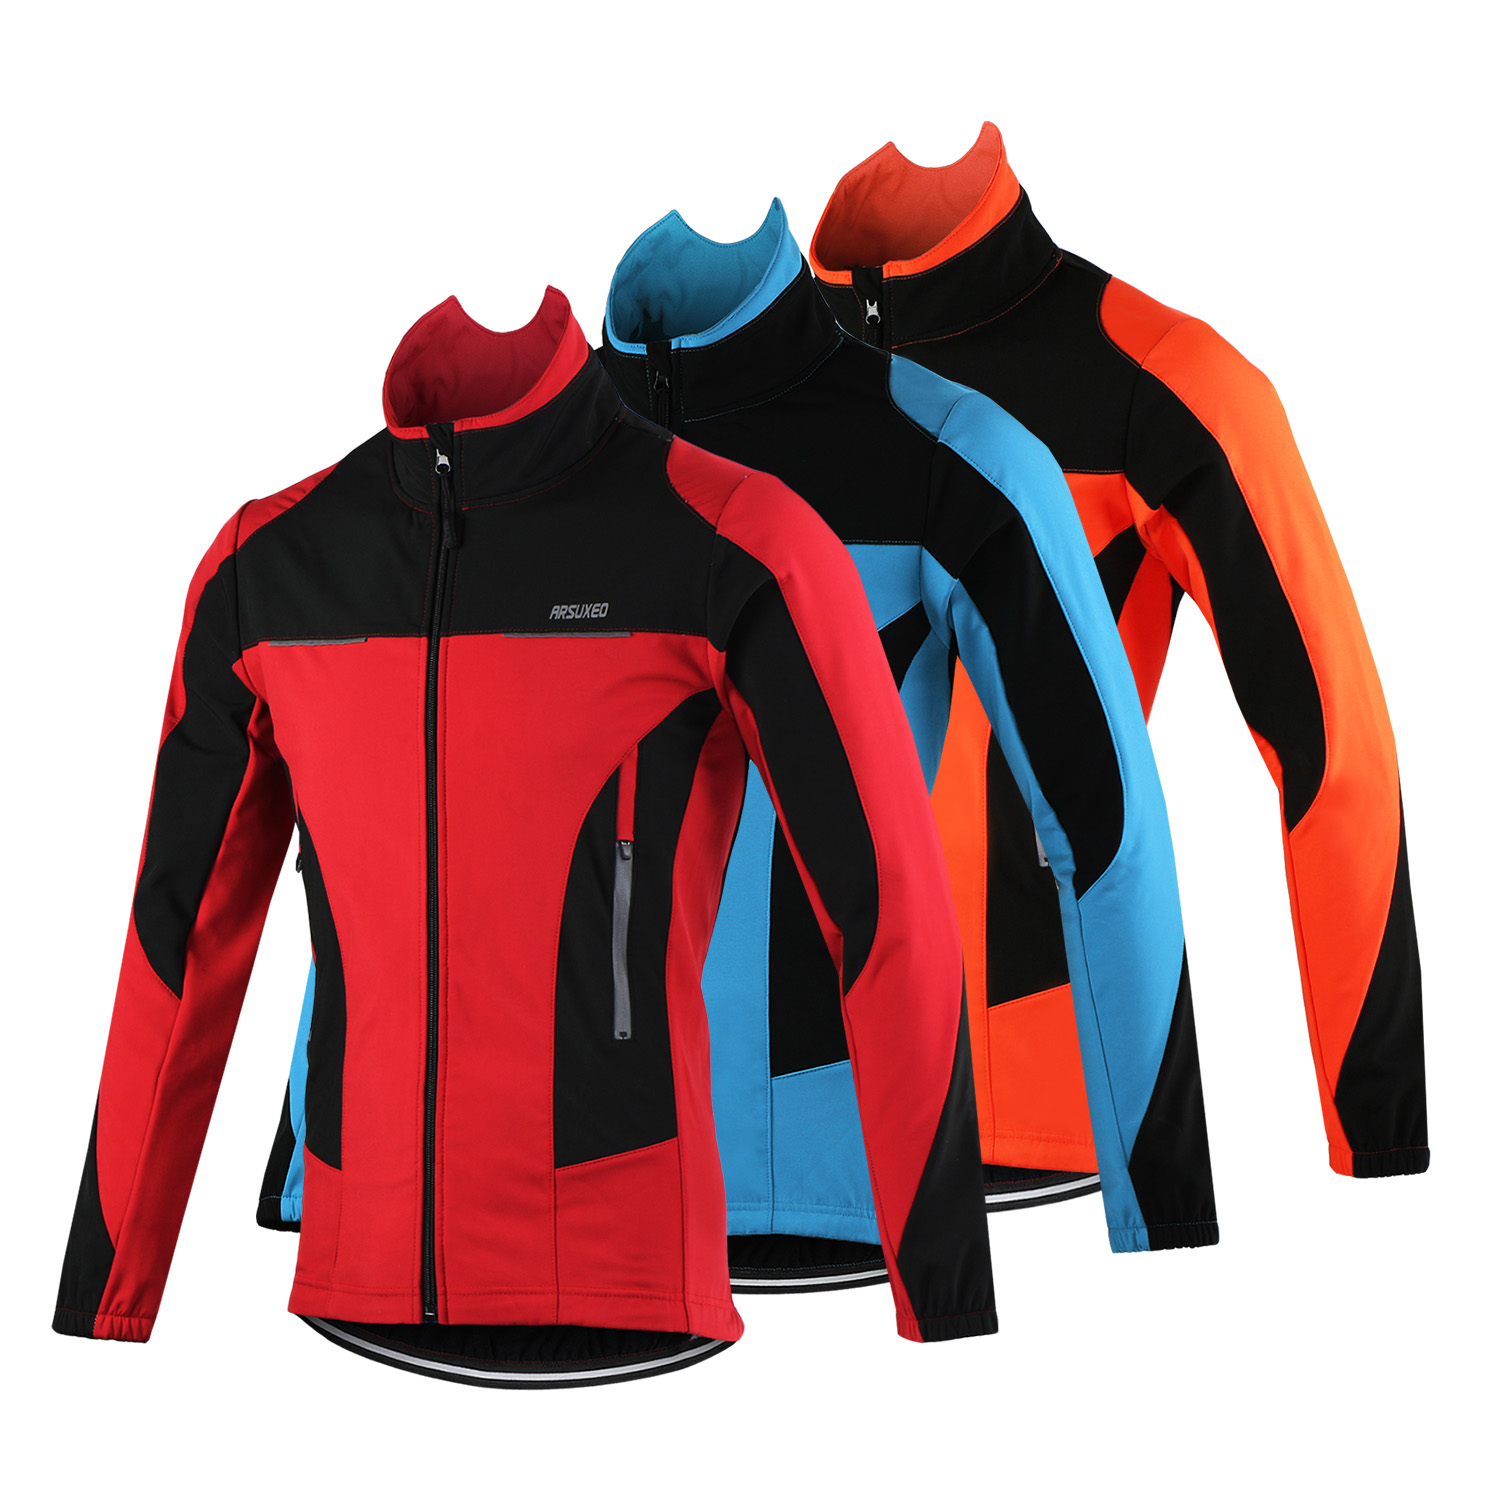 New Winter Men's Cycling Jacket Thermal Fleece Long Sleeve Windproof Waterproof Mountain Bike Downhill MTB Outdoor Sports Coat  wosawe outdoor sports windproof winter long sleeve cycling jacket unisex fleece thermal mtb riding bike jersey men s coat